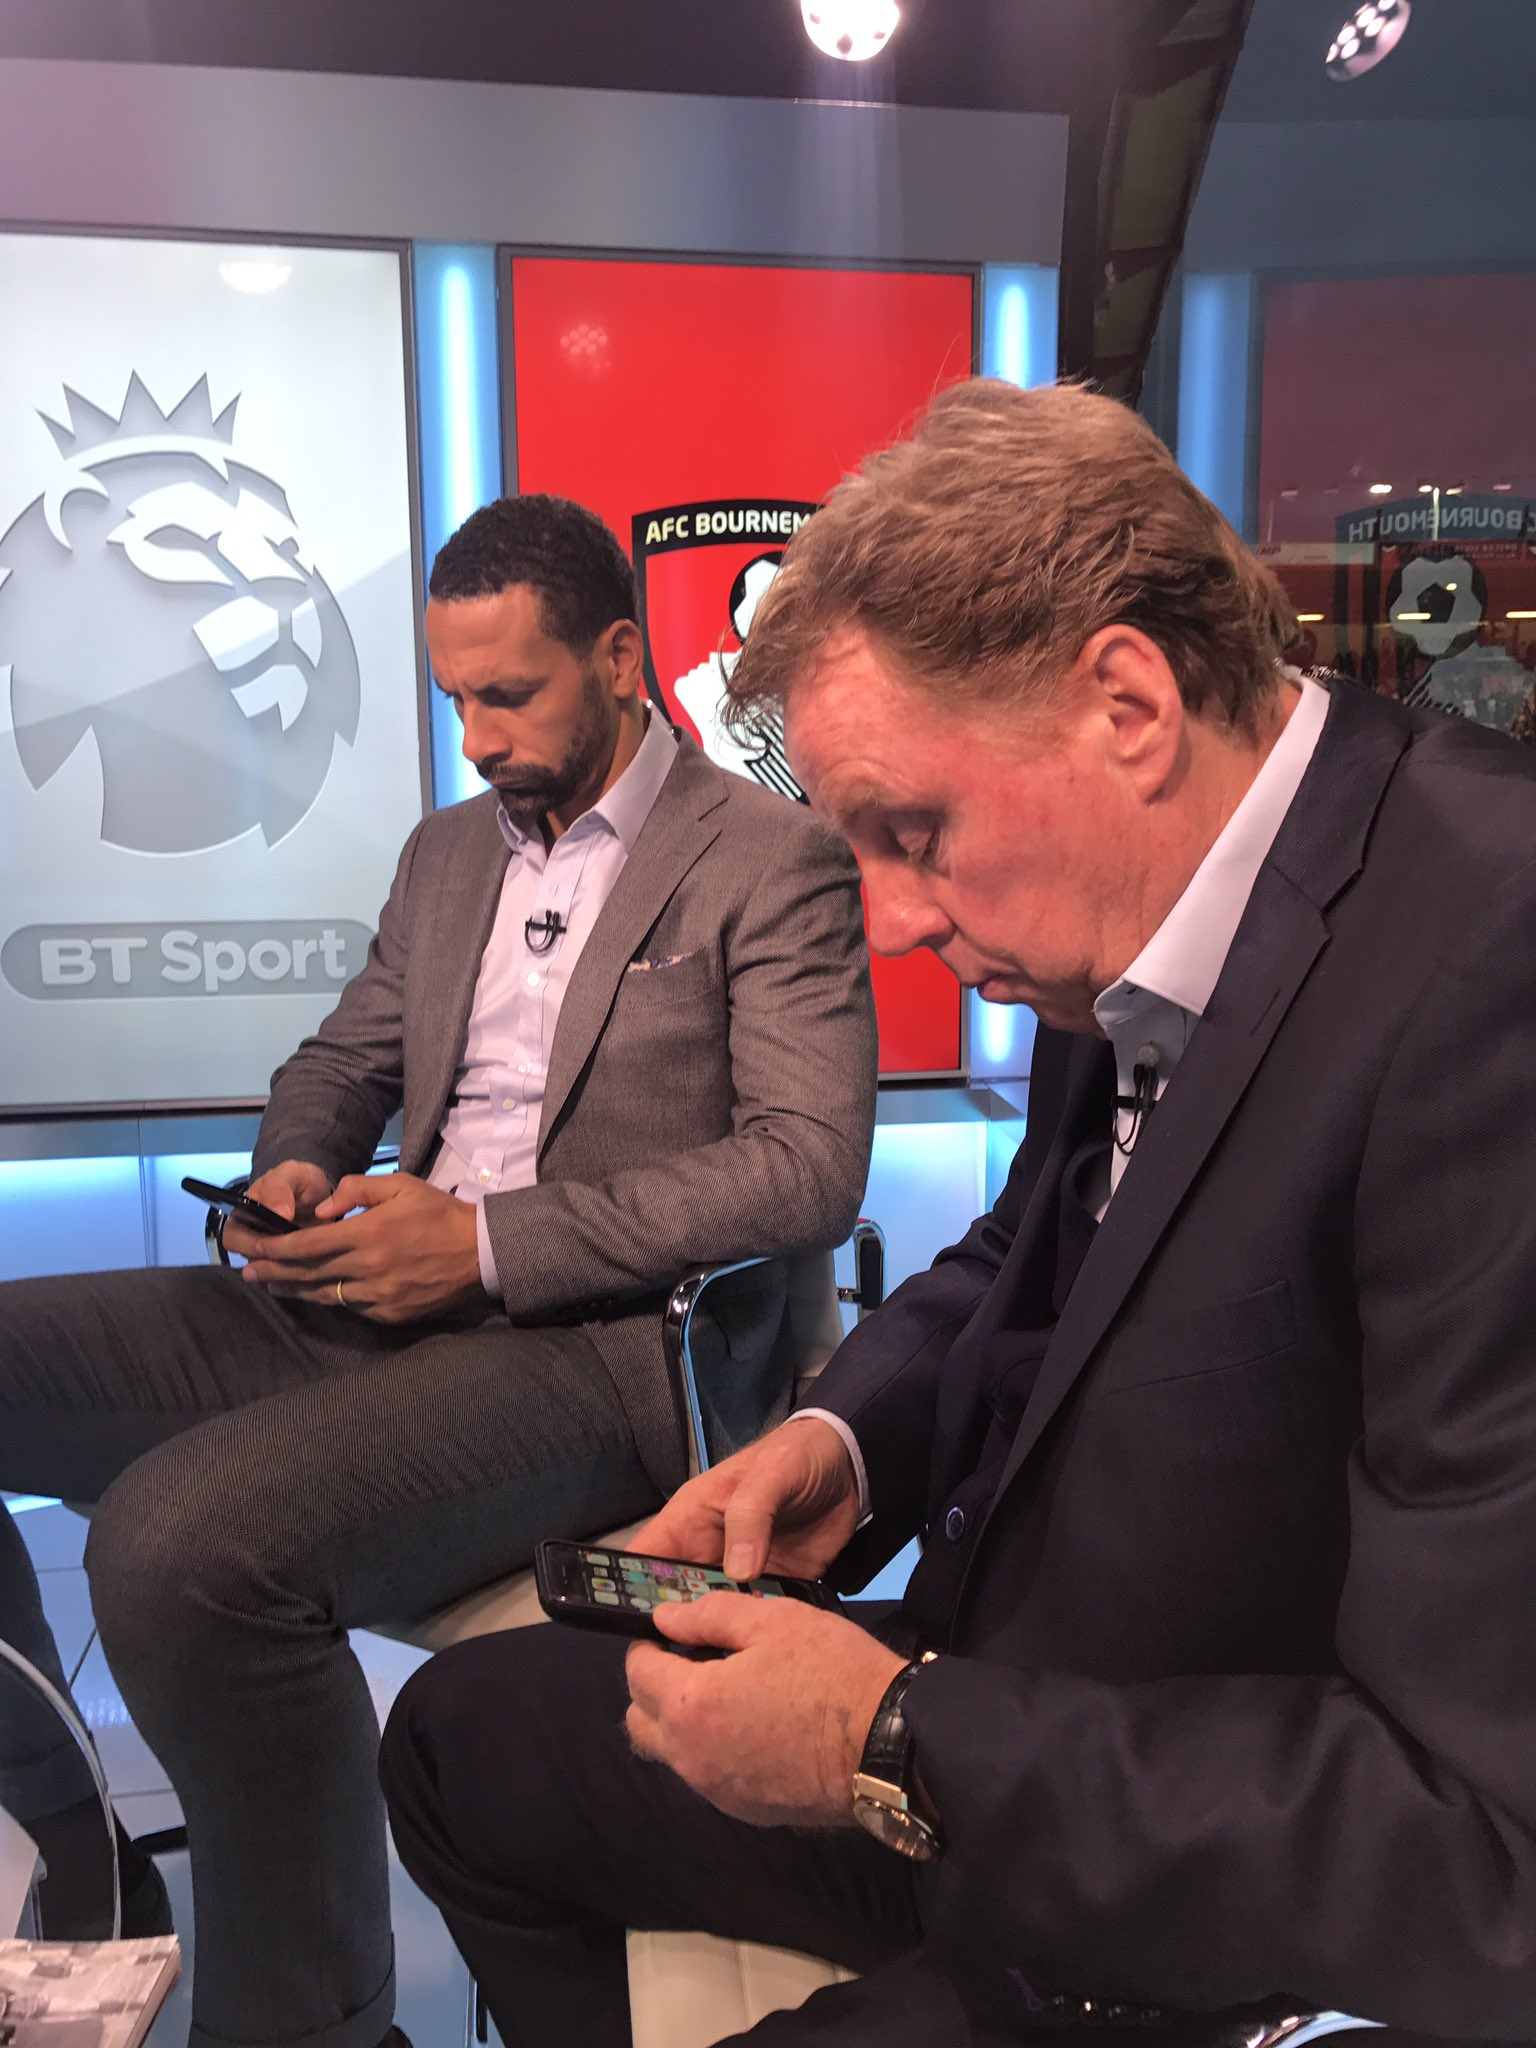 Bournemouth lead. The thoughts of these two comes next...if they get off their phones!!! 😜 @btsport https://t.co/PkjmCIgFT7